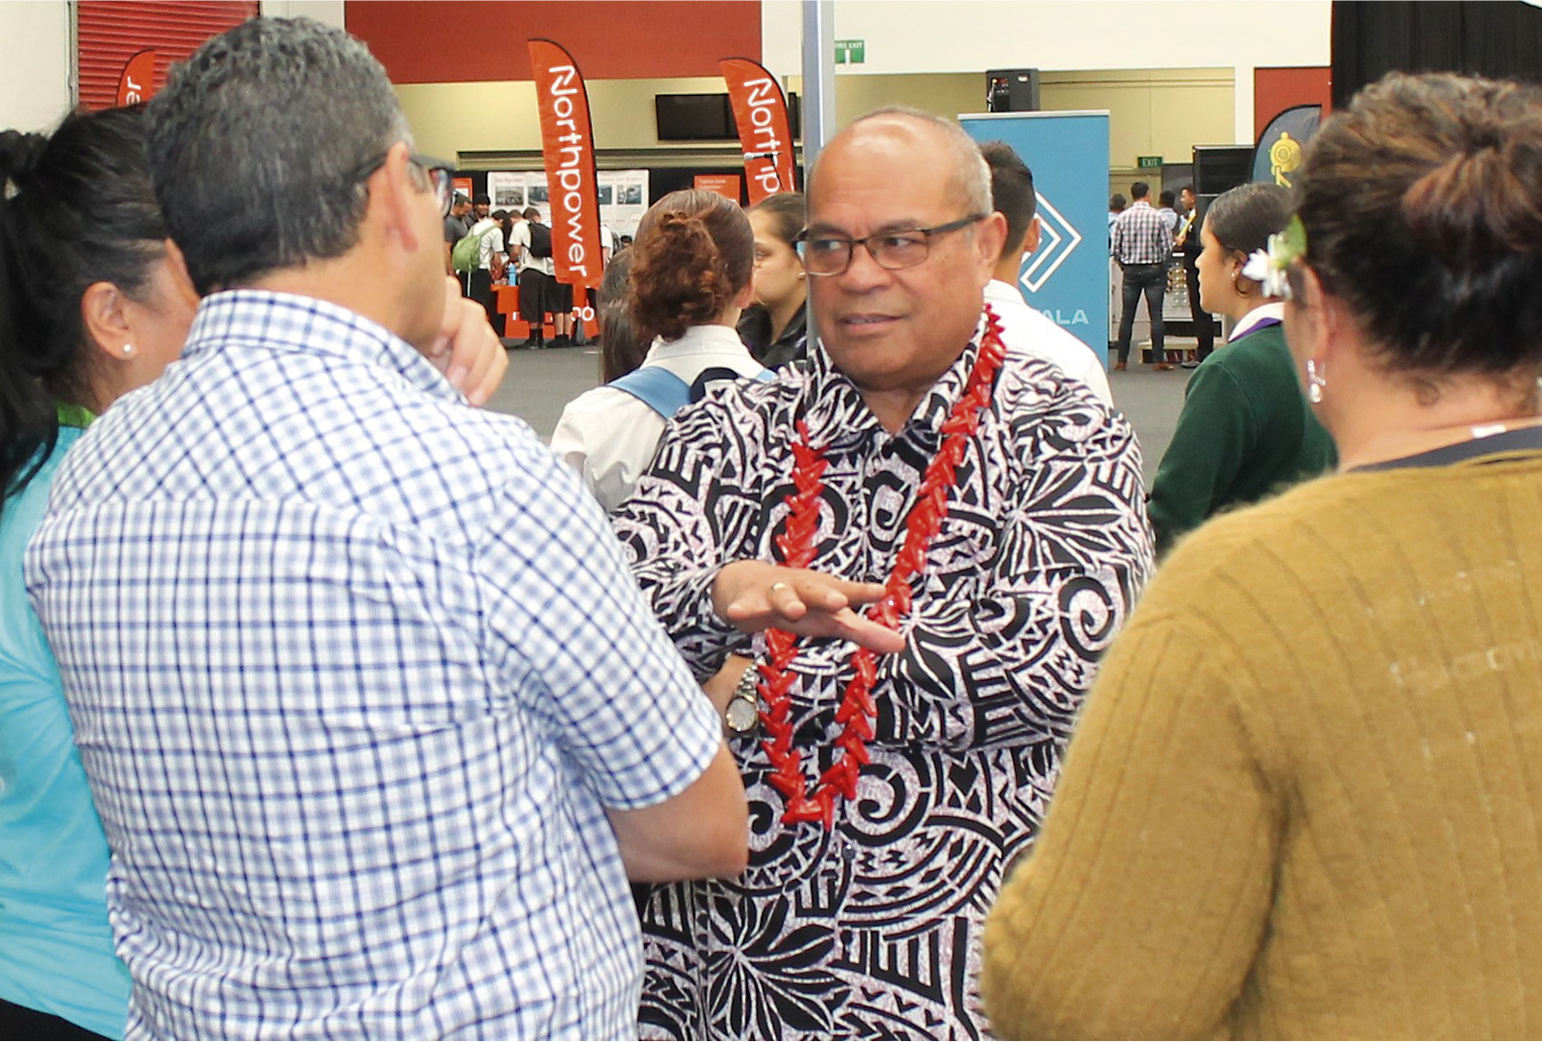 Minister for Pacific Peoples Aupito William Sio at the event